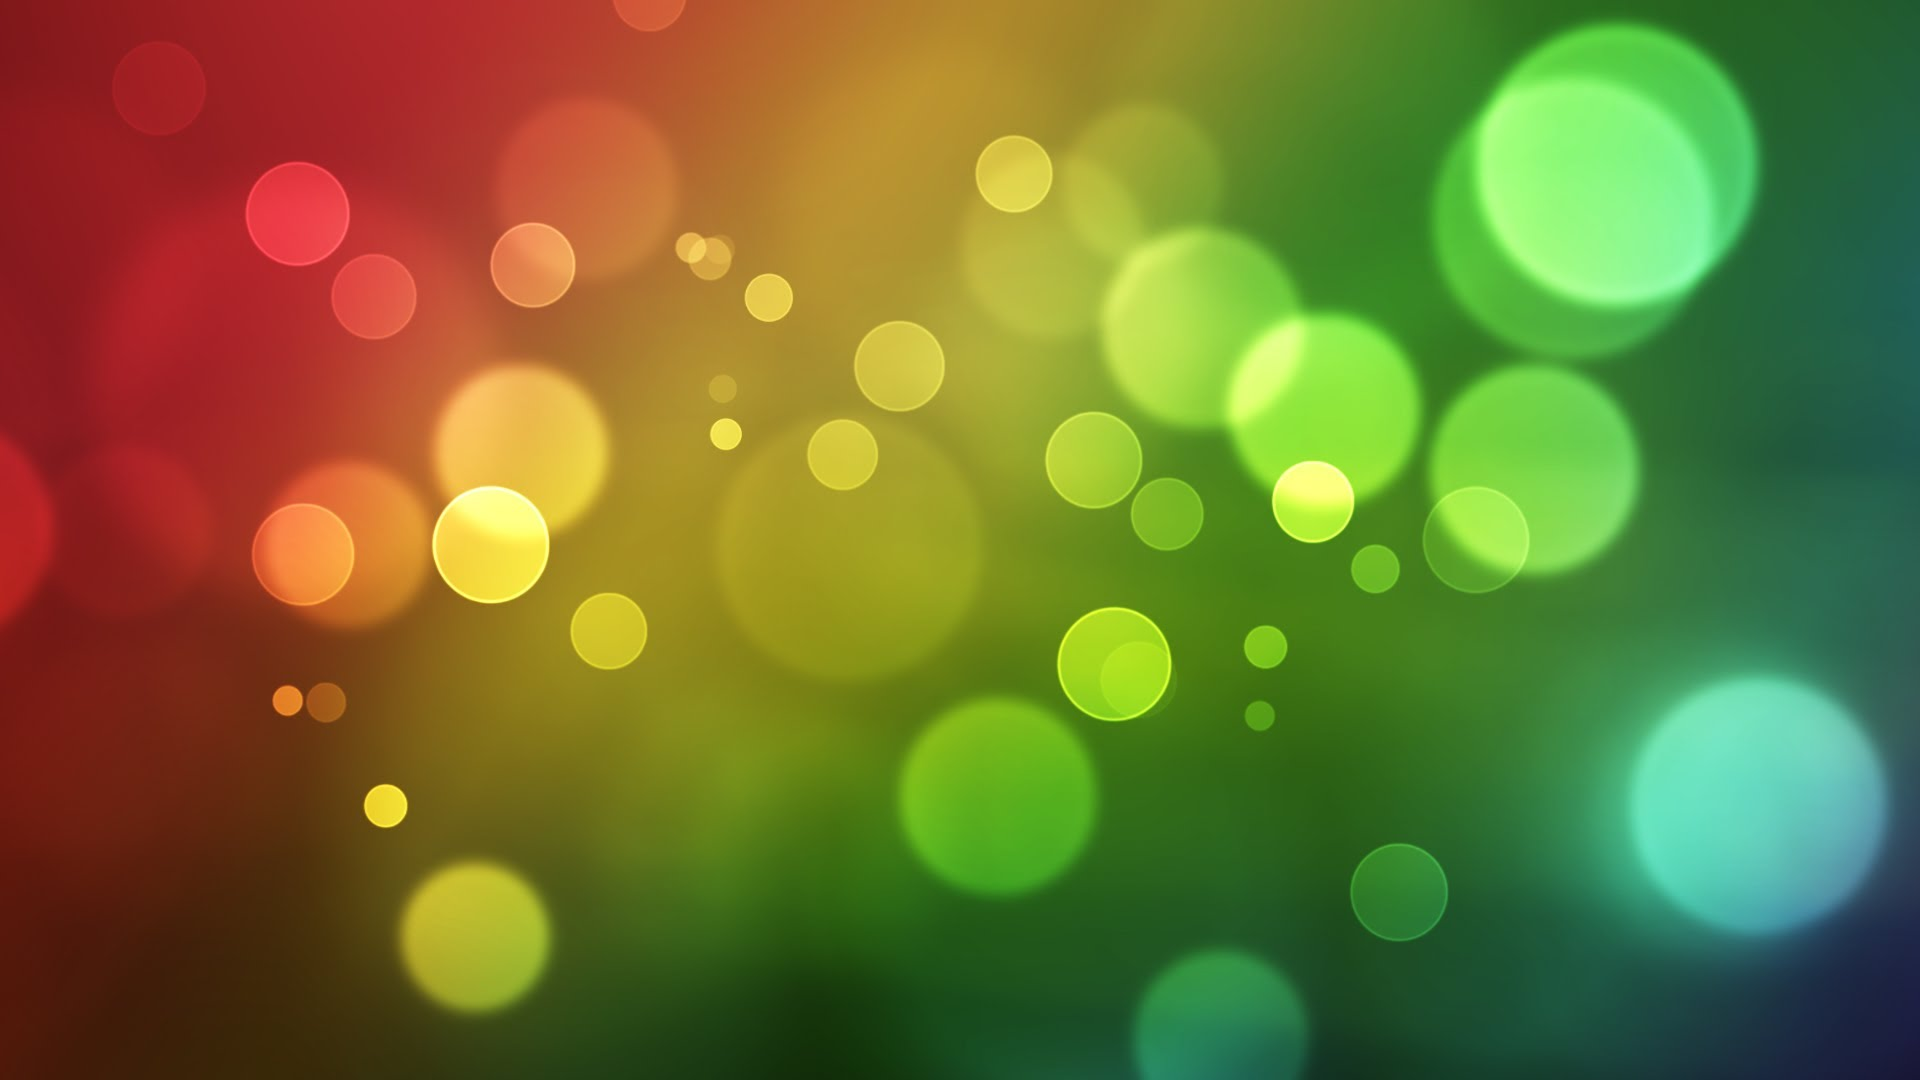 Glowing Light Wallpaper